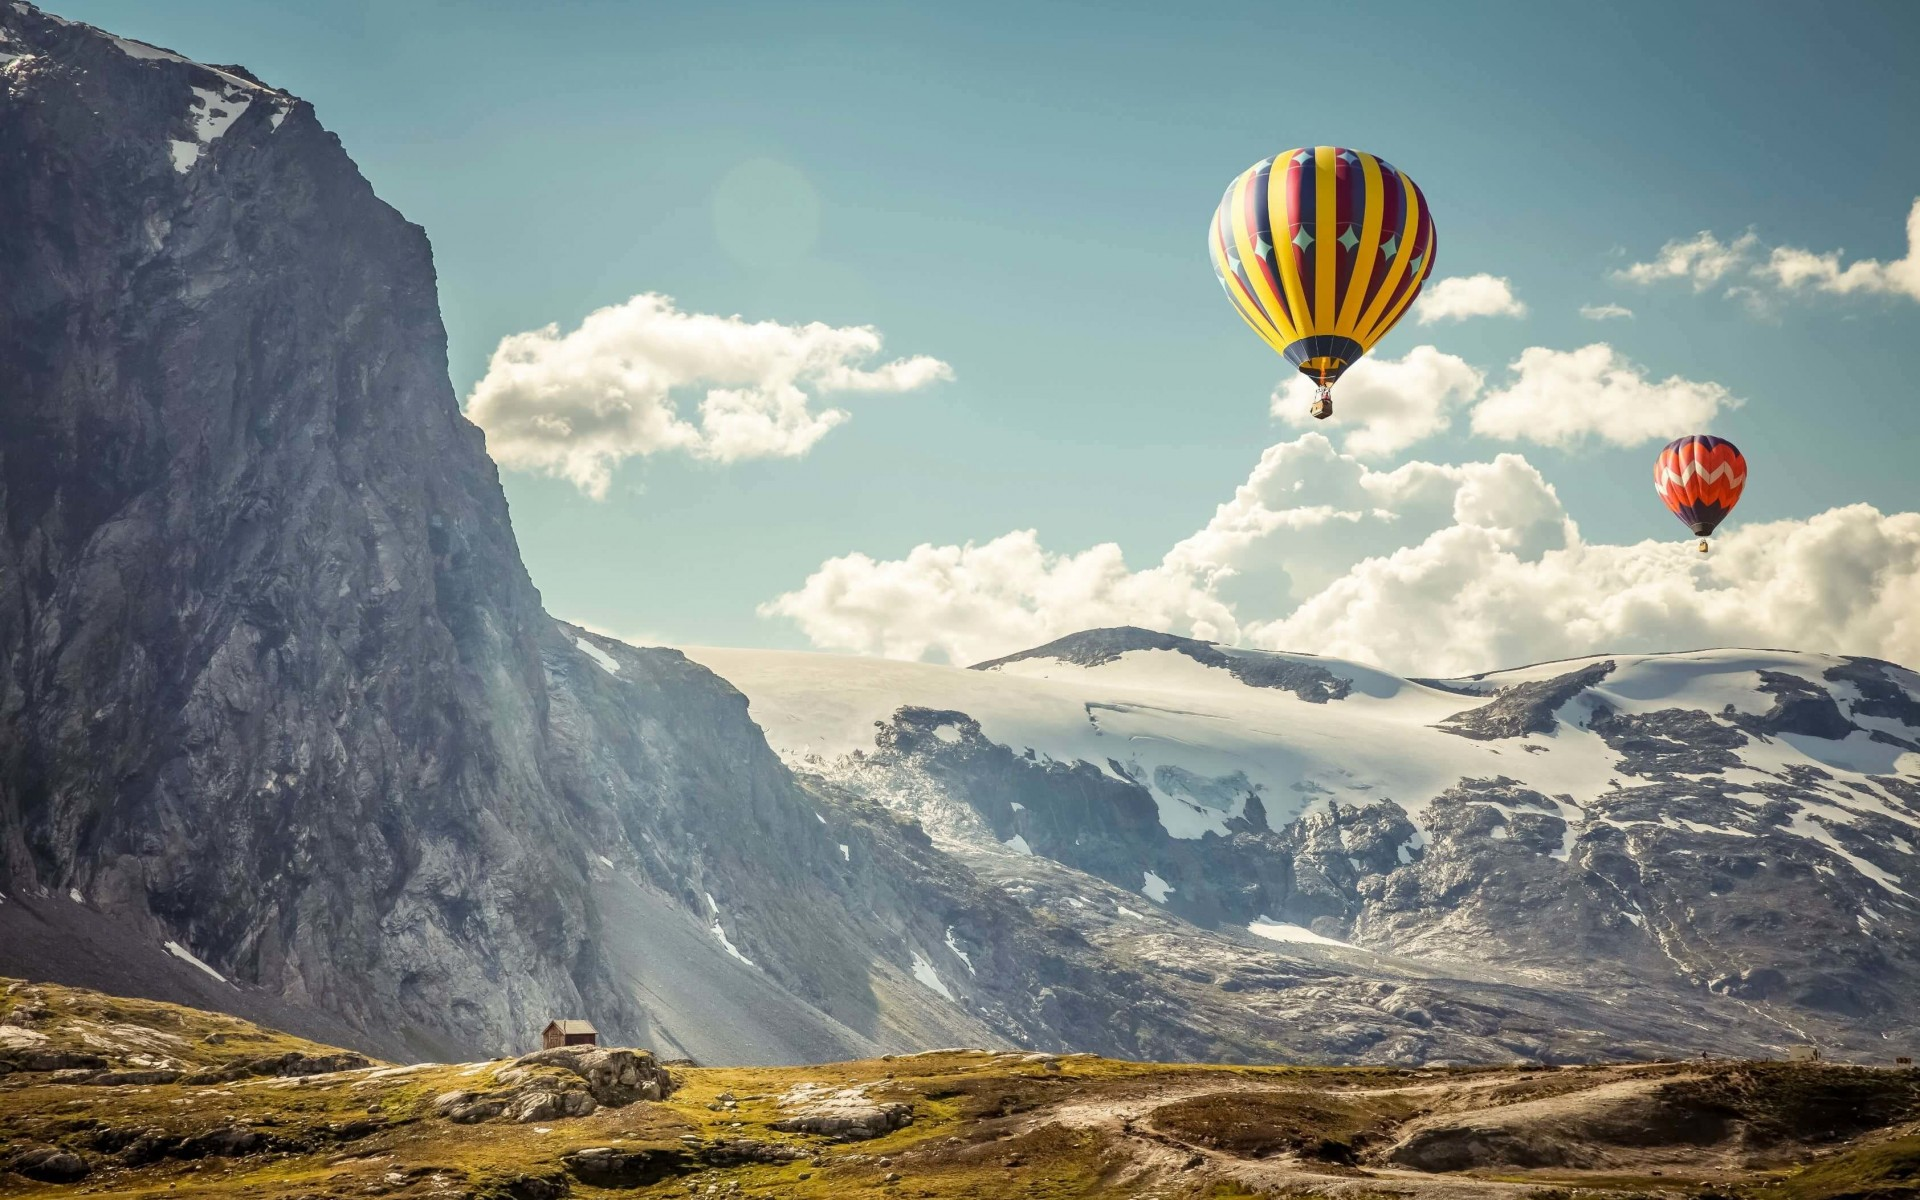 Hot Air Balloon Over the Mountain Wallpaper for Desktop 1920x1200